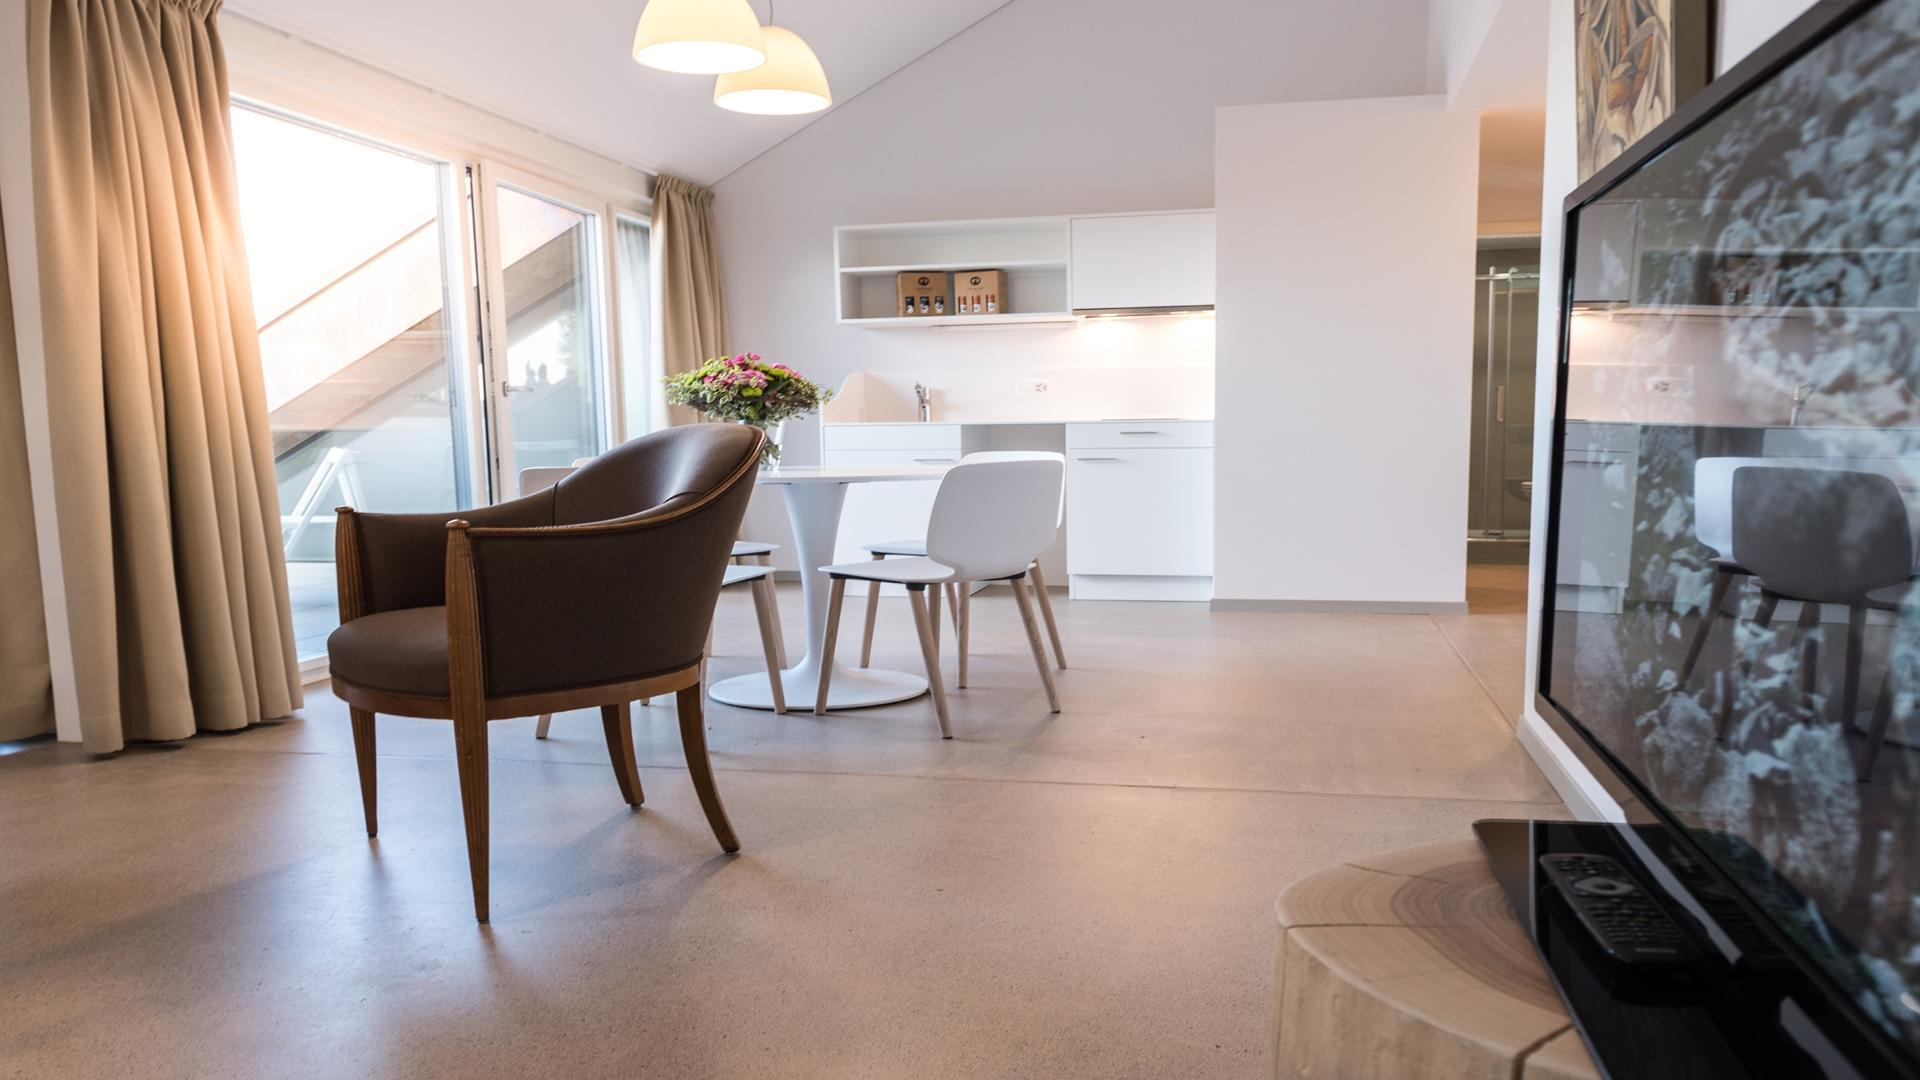 R sidence h teli re la croix blanche fribourg for Residence hoteliere